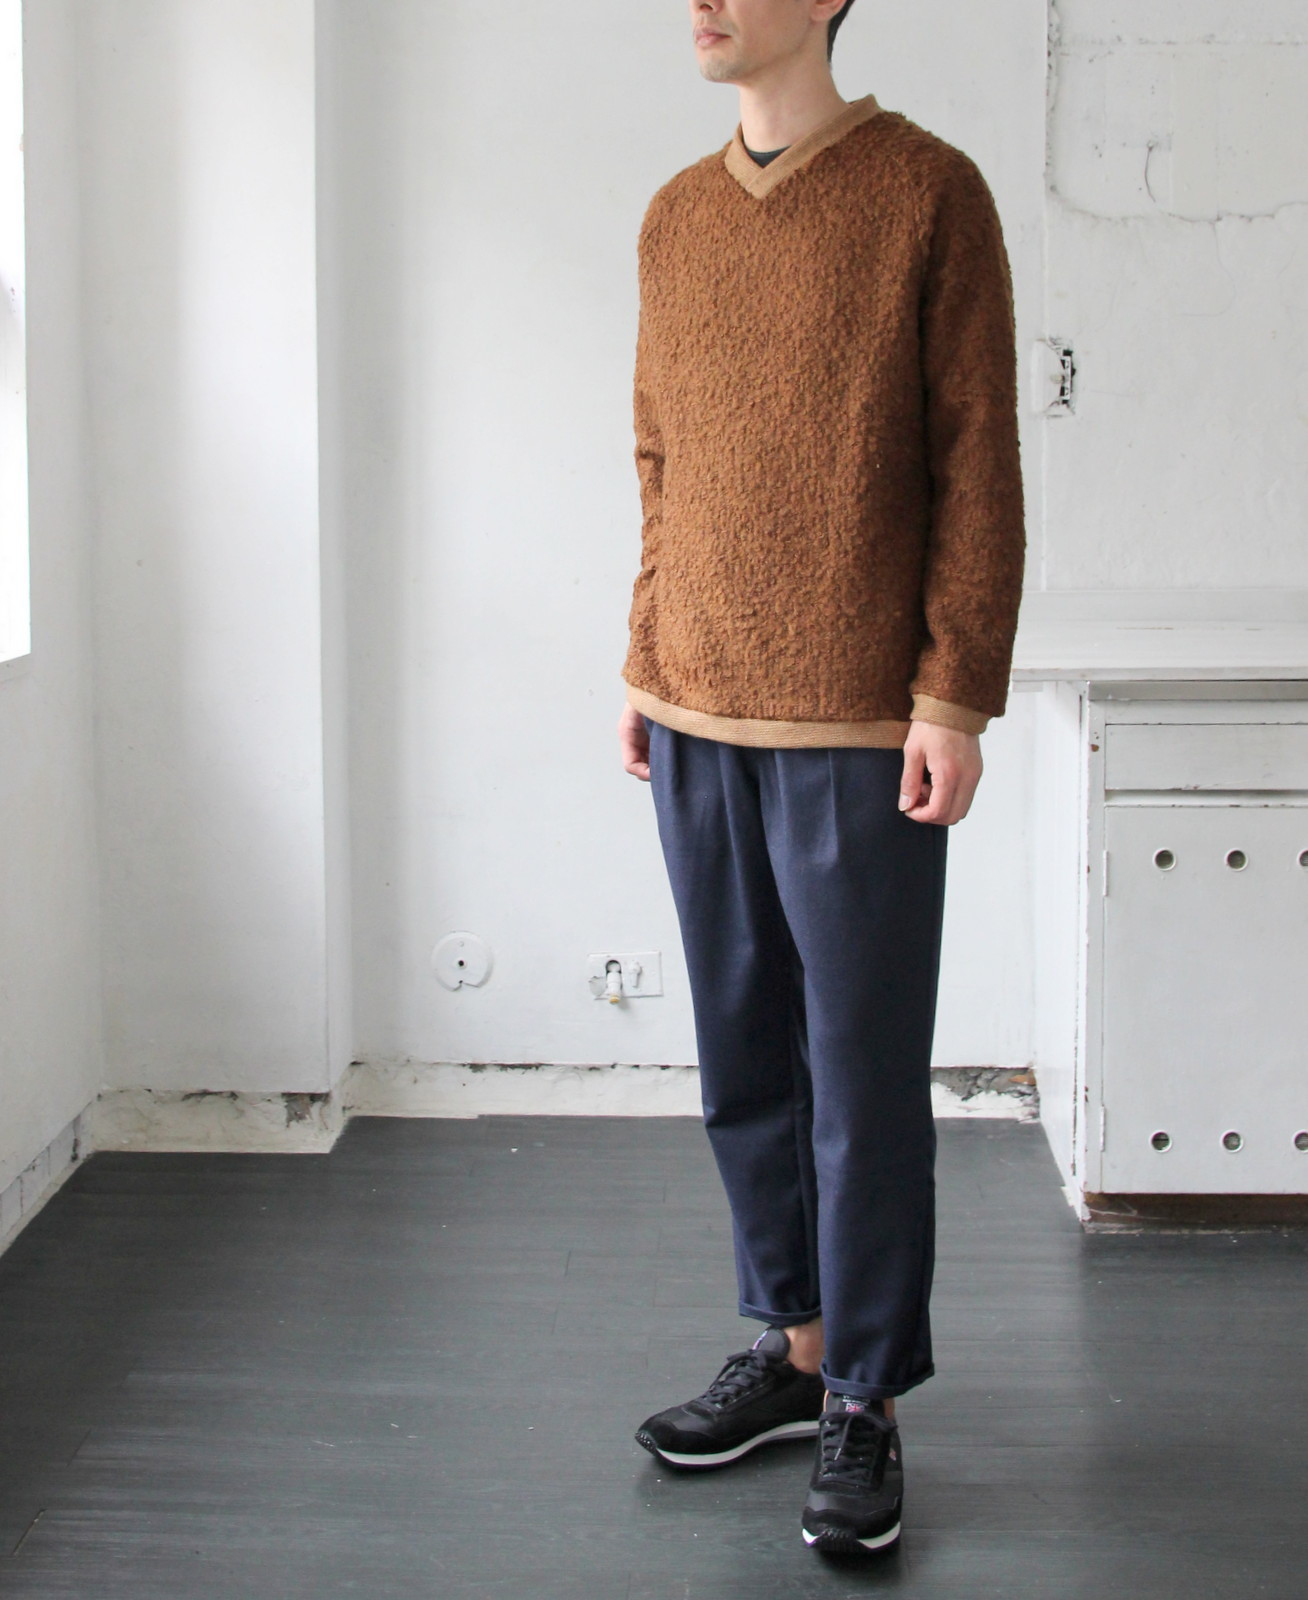 Wool Ring Small V Pull Over_c0379477_14513049.jpg